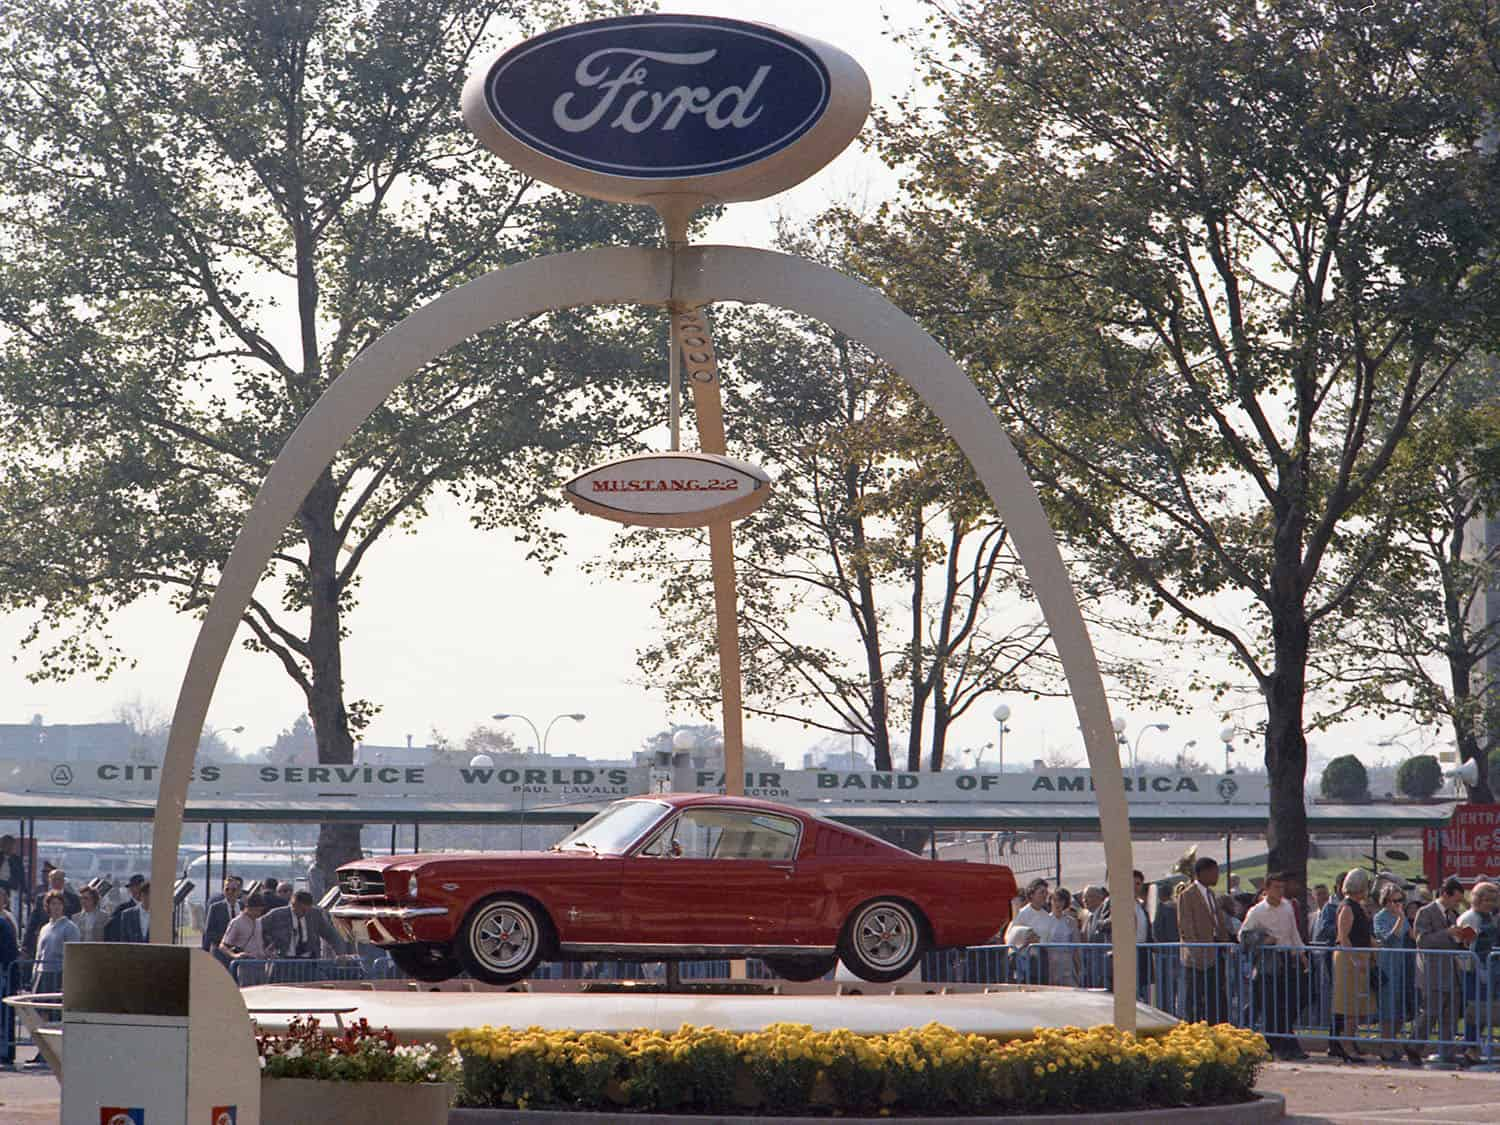 Ford Mustang on display stand at 1964 NY Worlds Fair